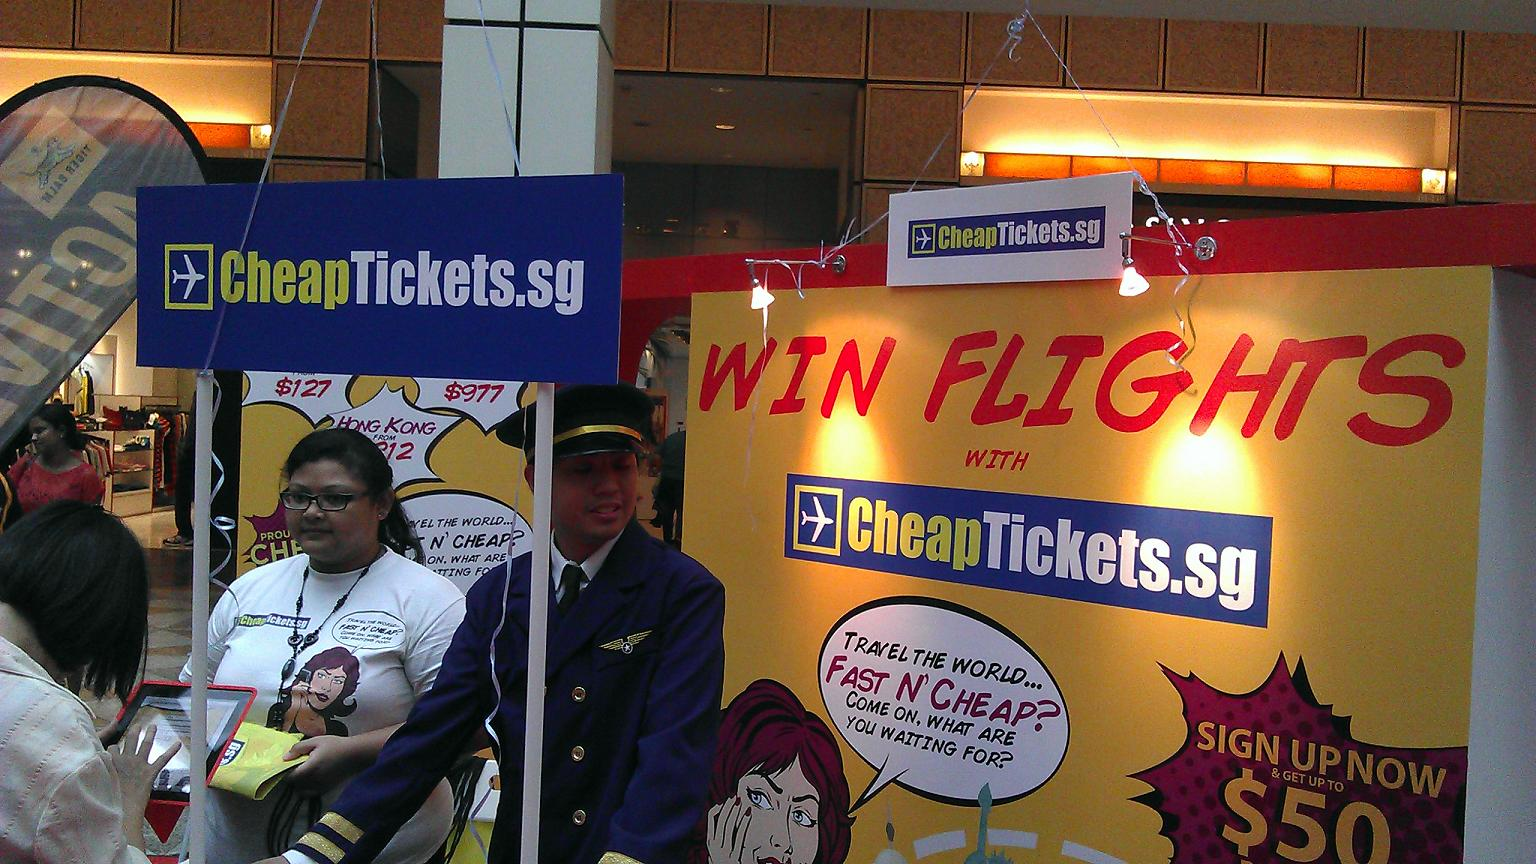 CheapTickets Main Booth